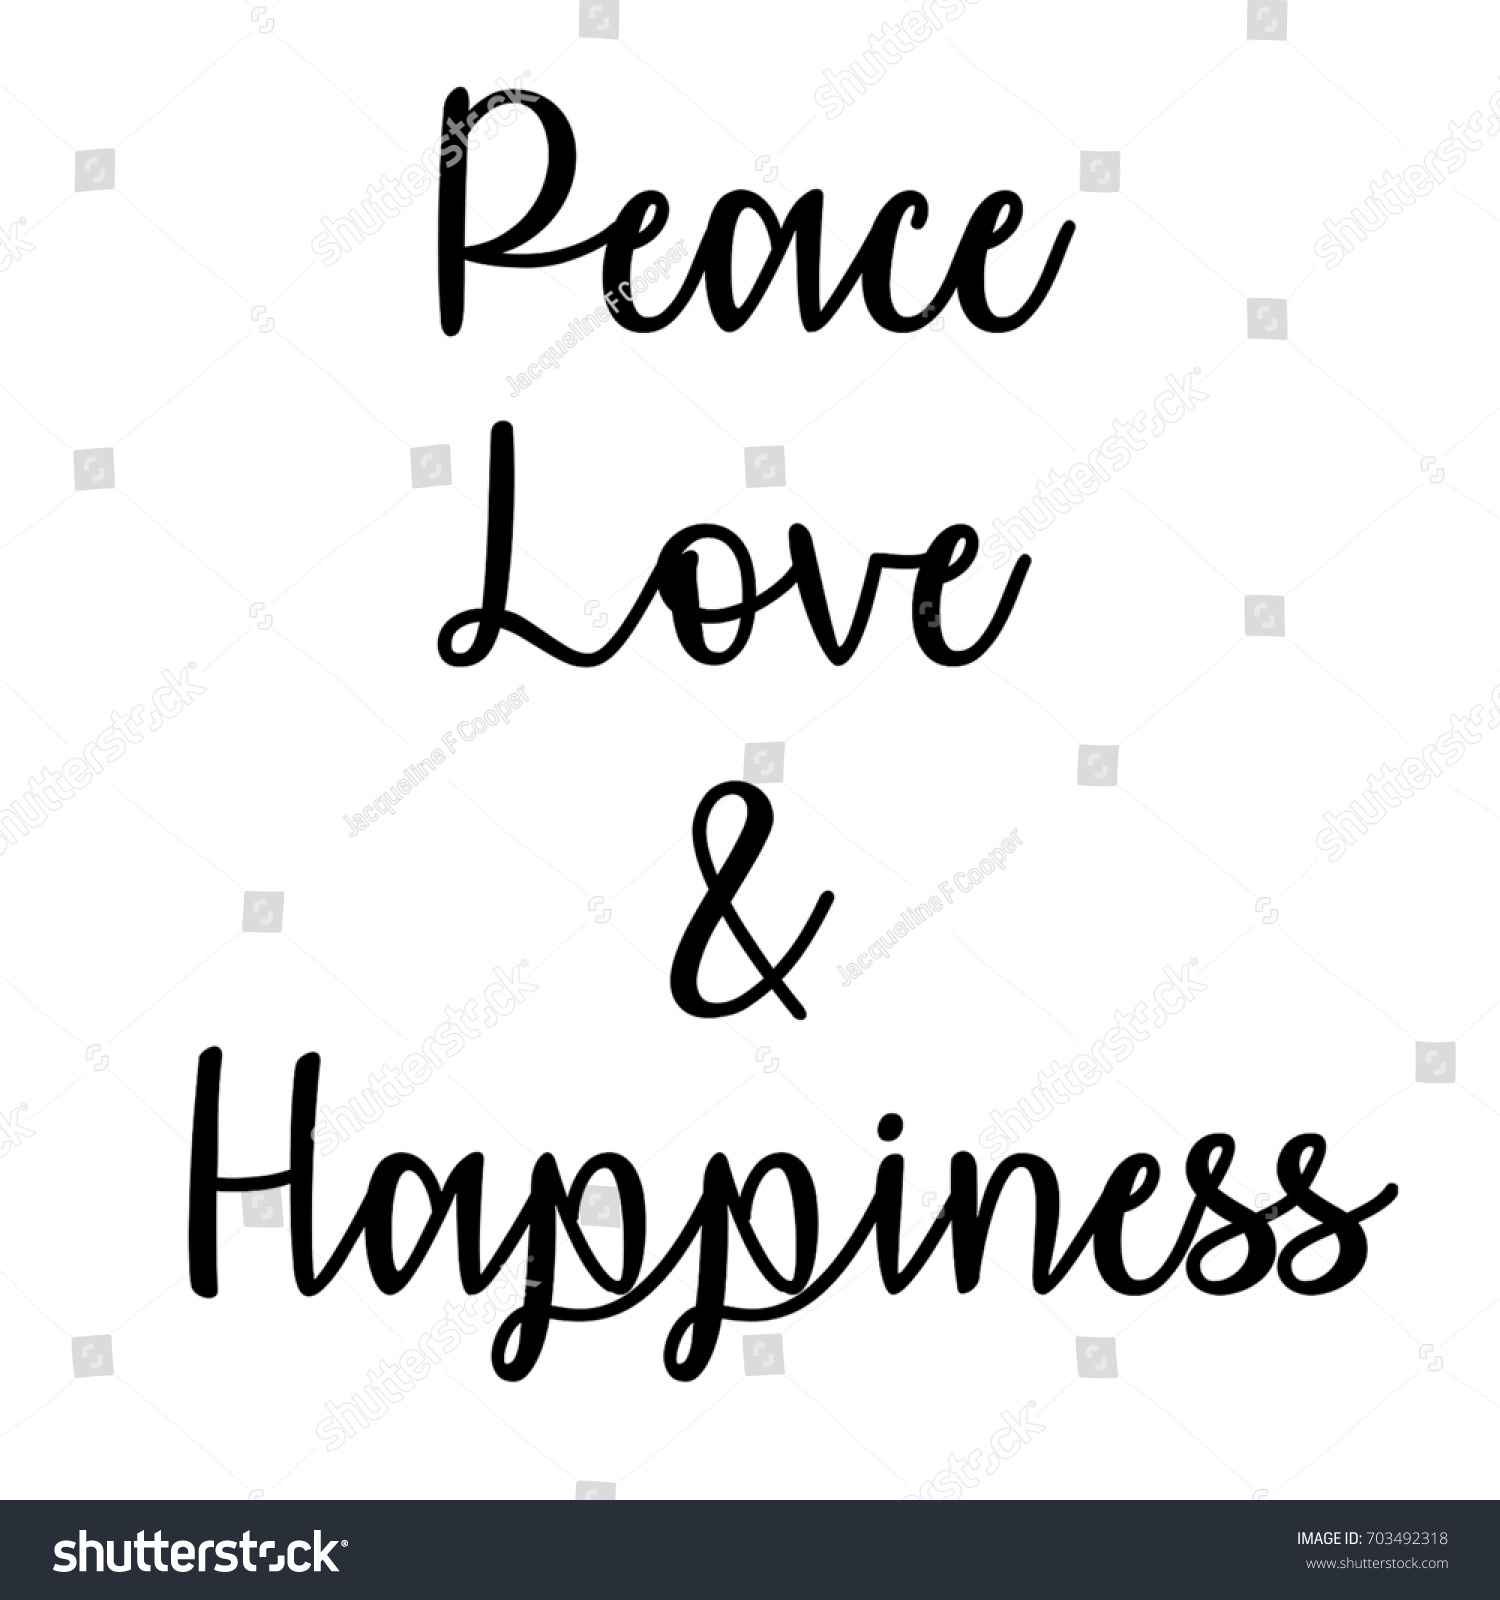 Peace Love And Happiness Quotes Custom Inspirational Mindful Quote Peace Love Happiness Stock